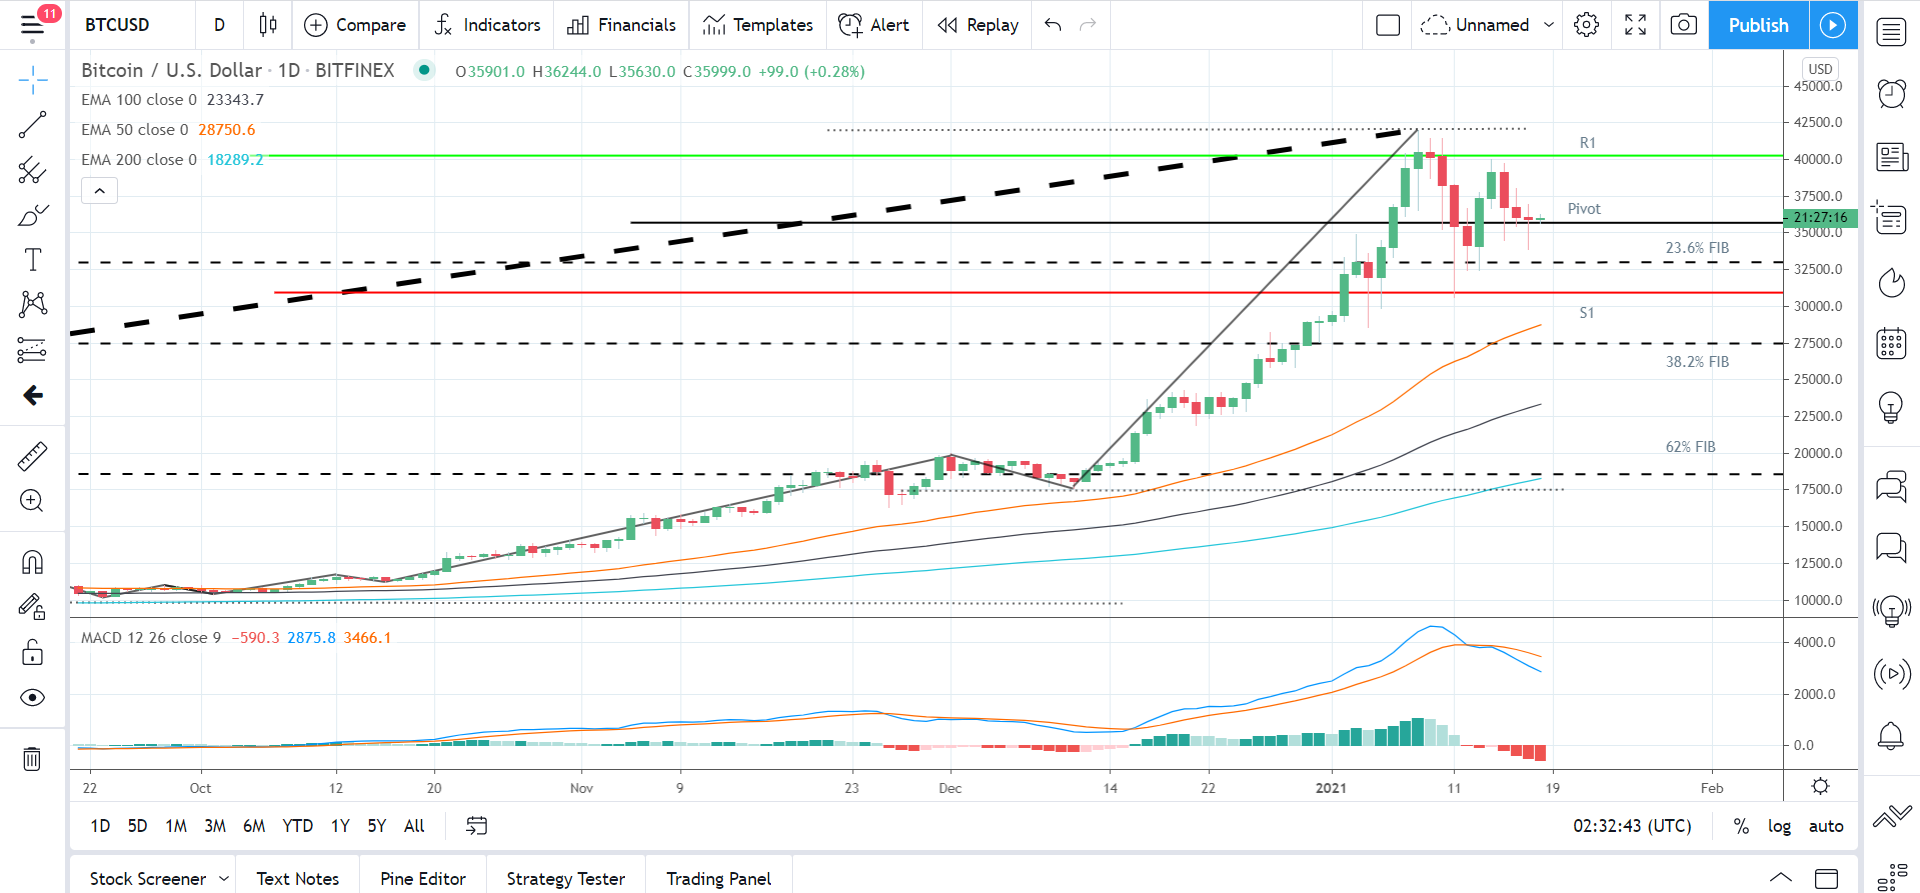 BTCUSD 180121 Daily Chart